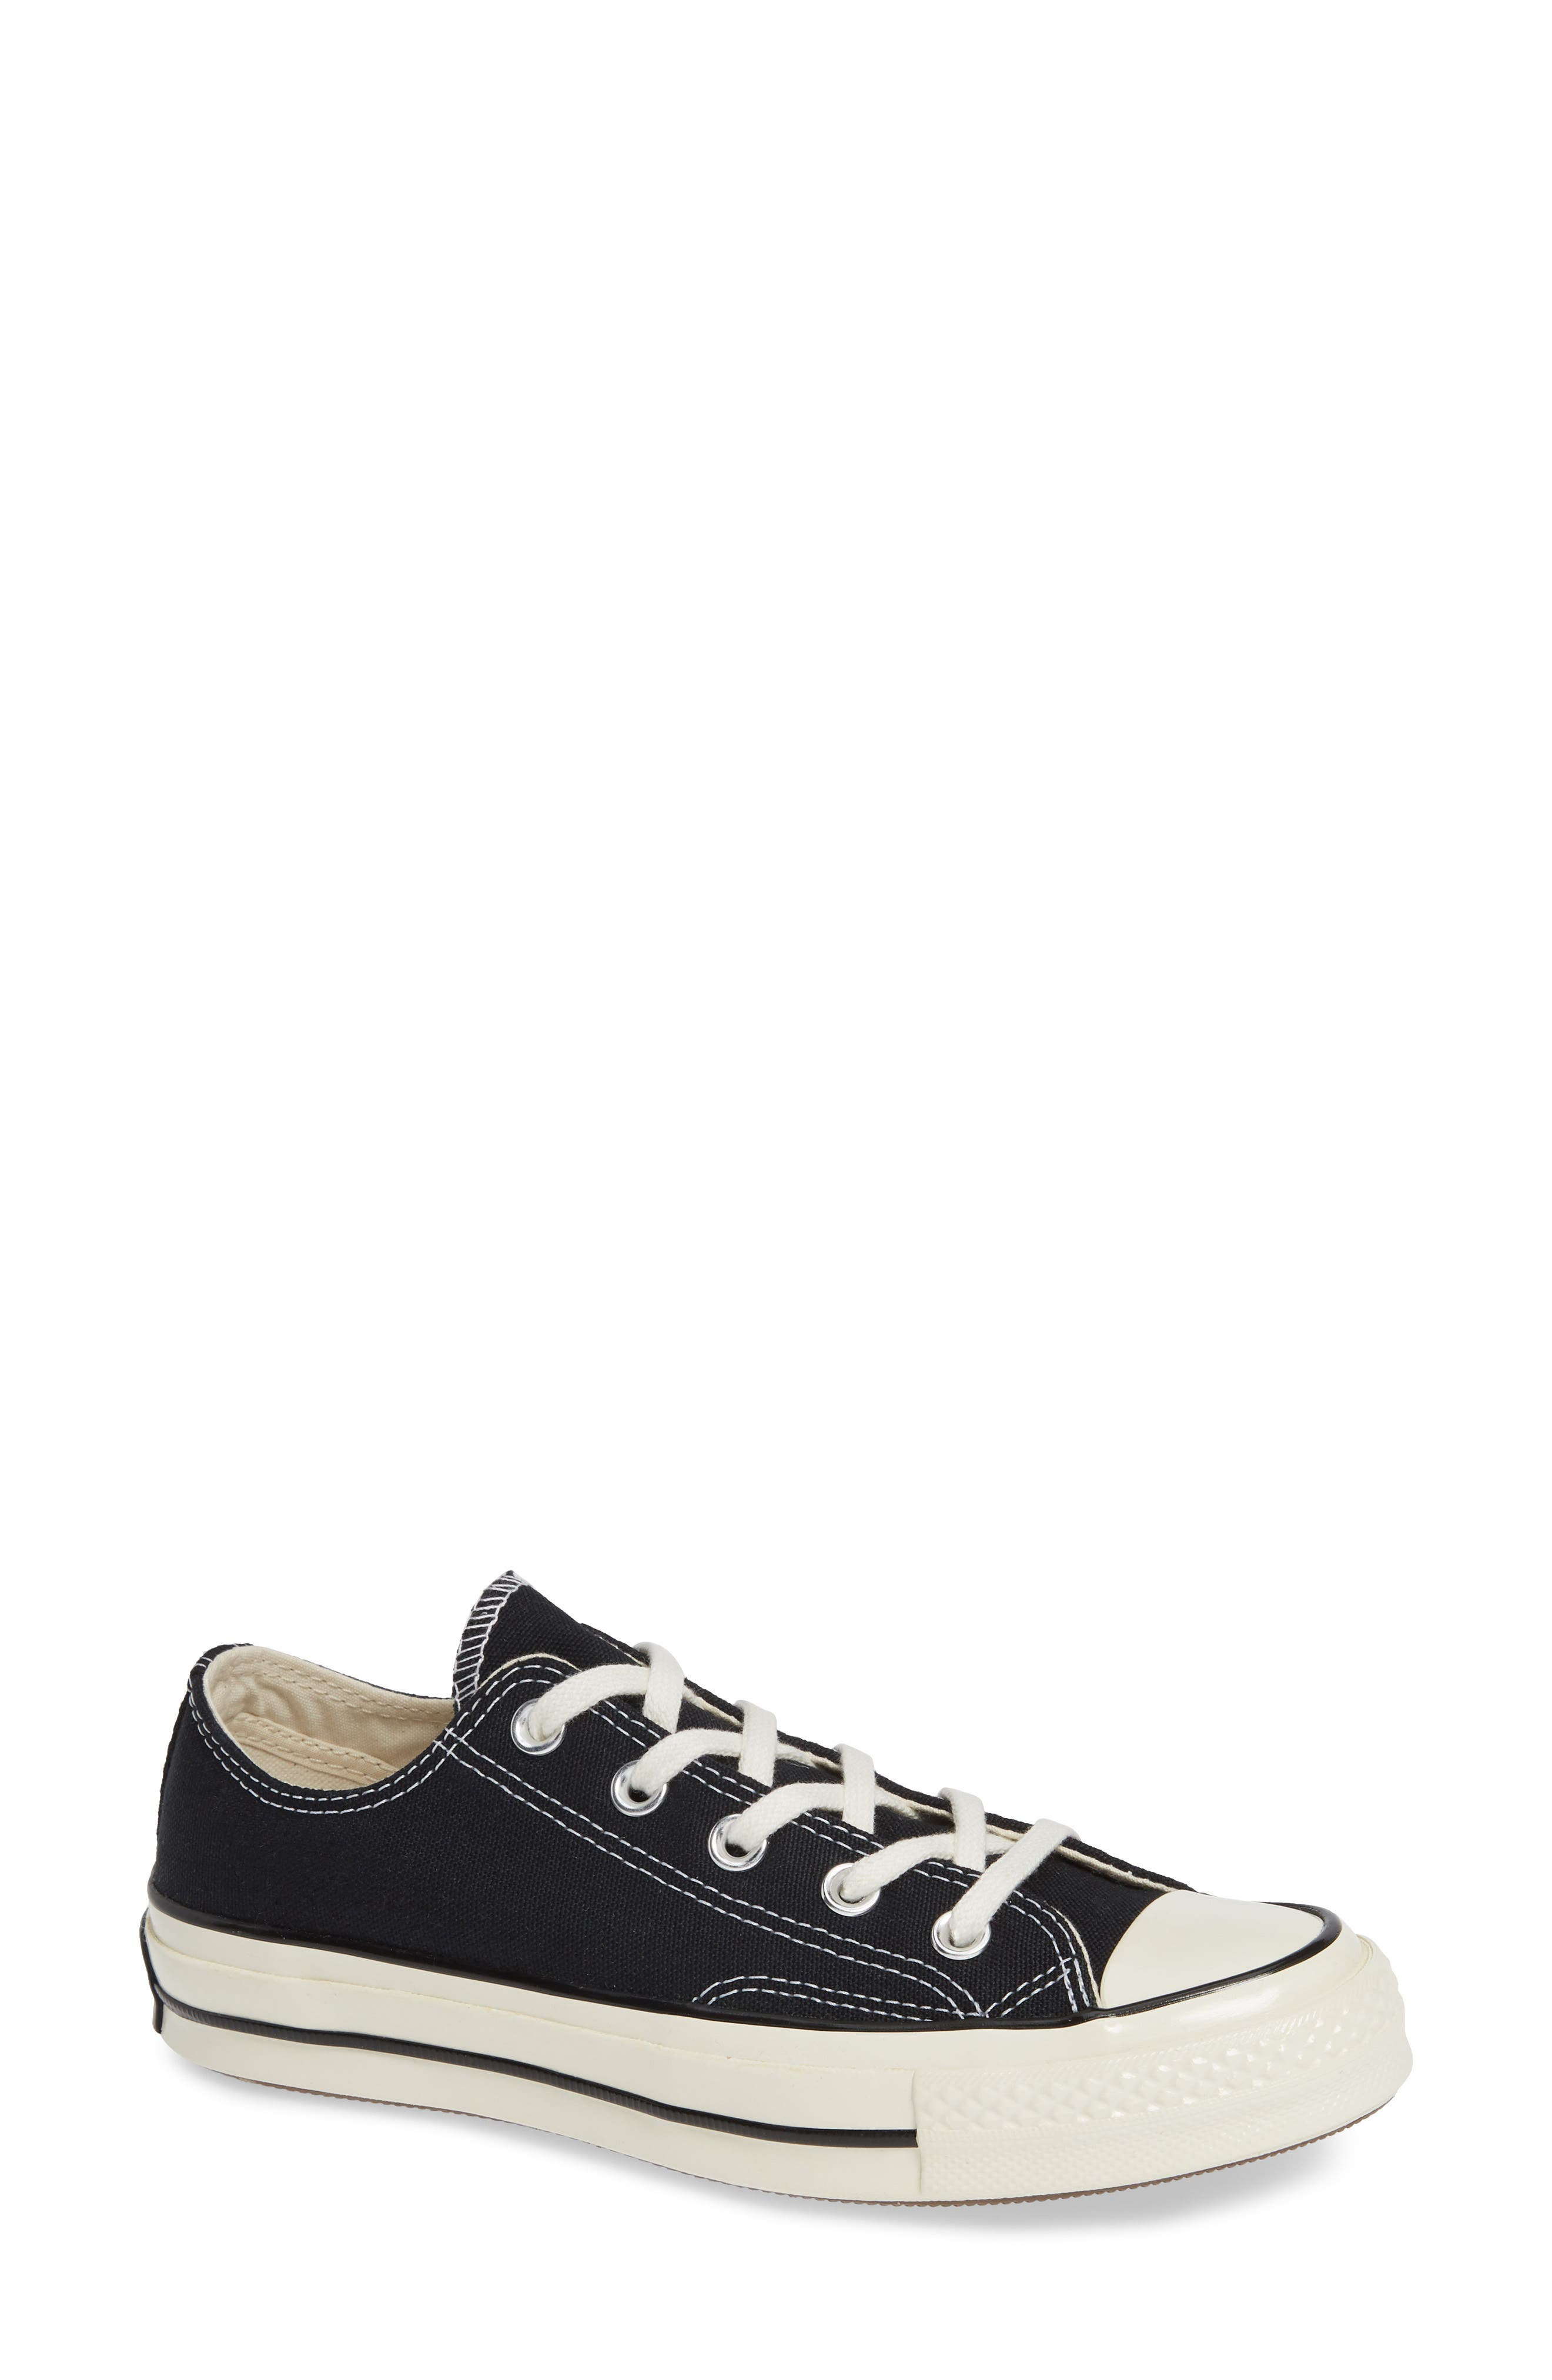 CONVERSE, Chuck Taylor<sup>®</sup> All Star<sup>®</sup> Chuck 70 Ox Sneaker, Main thumbnail 1, color, BLACK/ BLACK/ EGRET